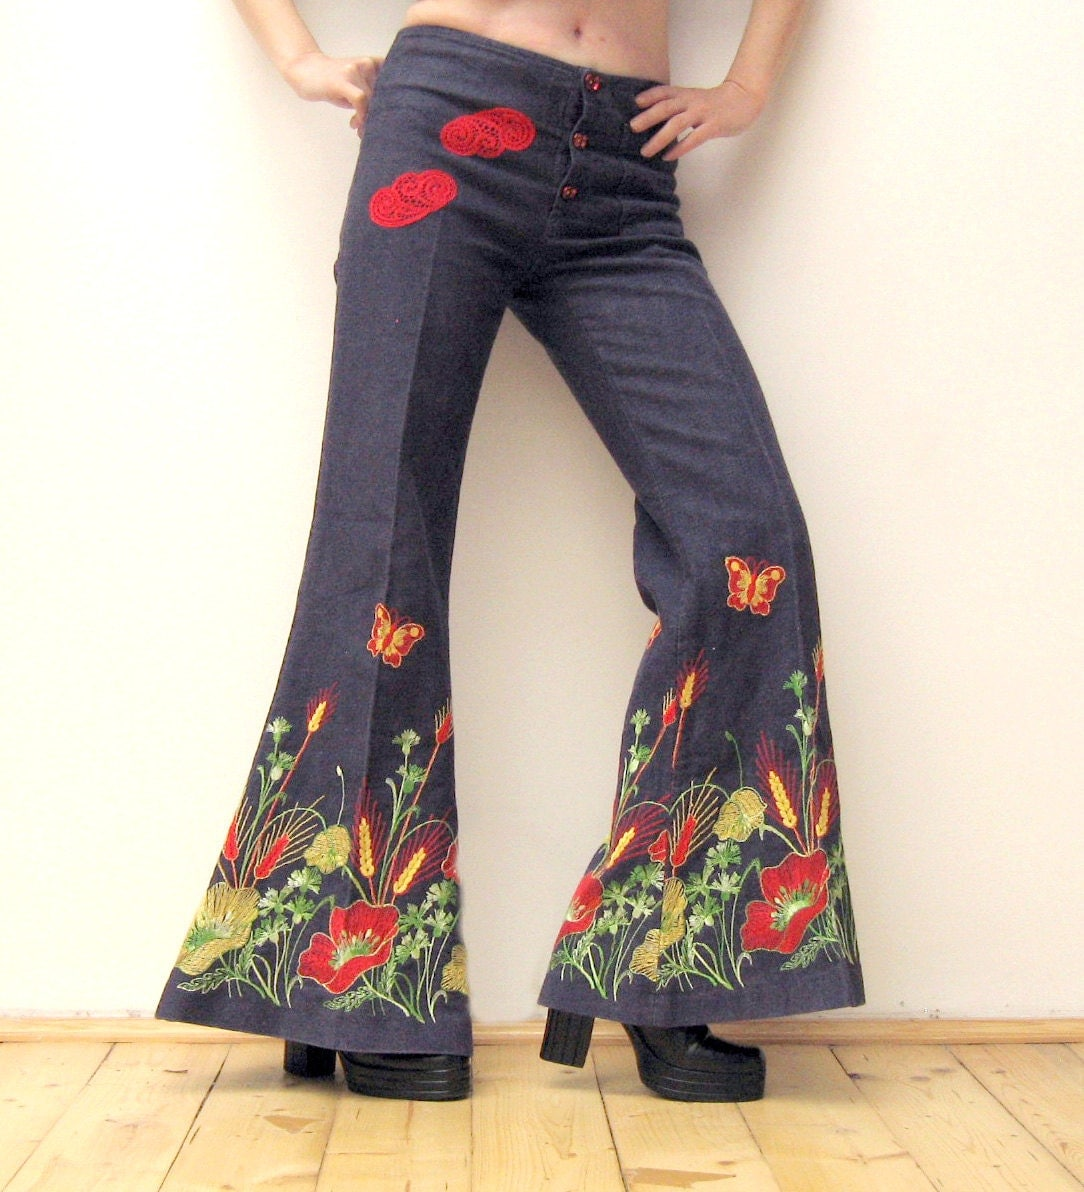 Unique vintage s bell bottom jeans embroidered